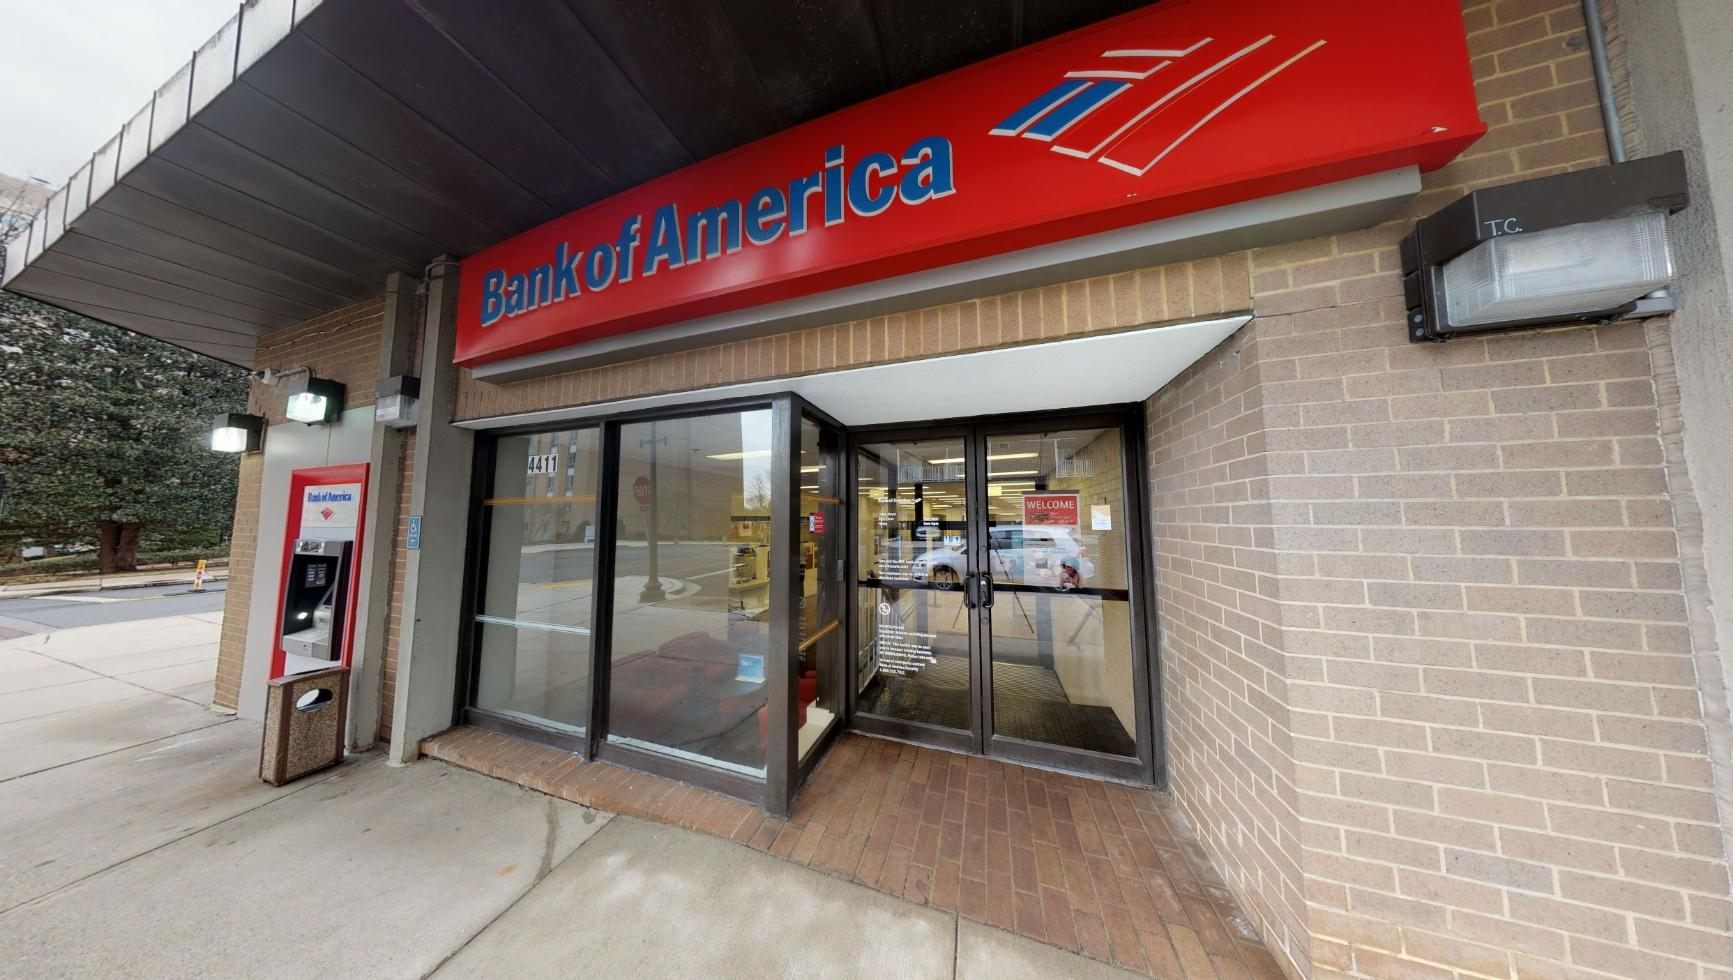 Bank of America financial center with walk-up ATM   4411 S Park Ave, Chevy Chase, MD 20815